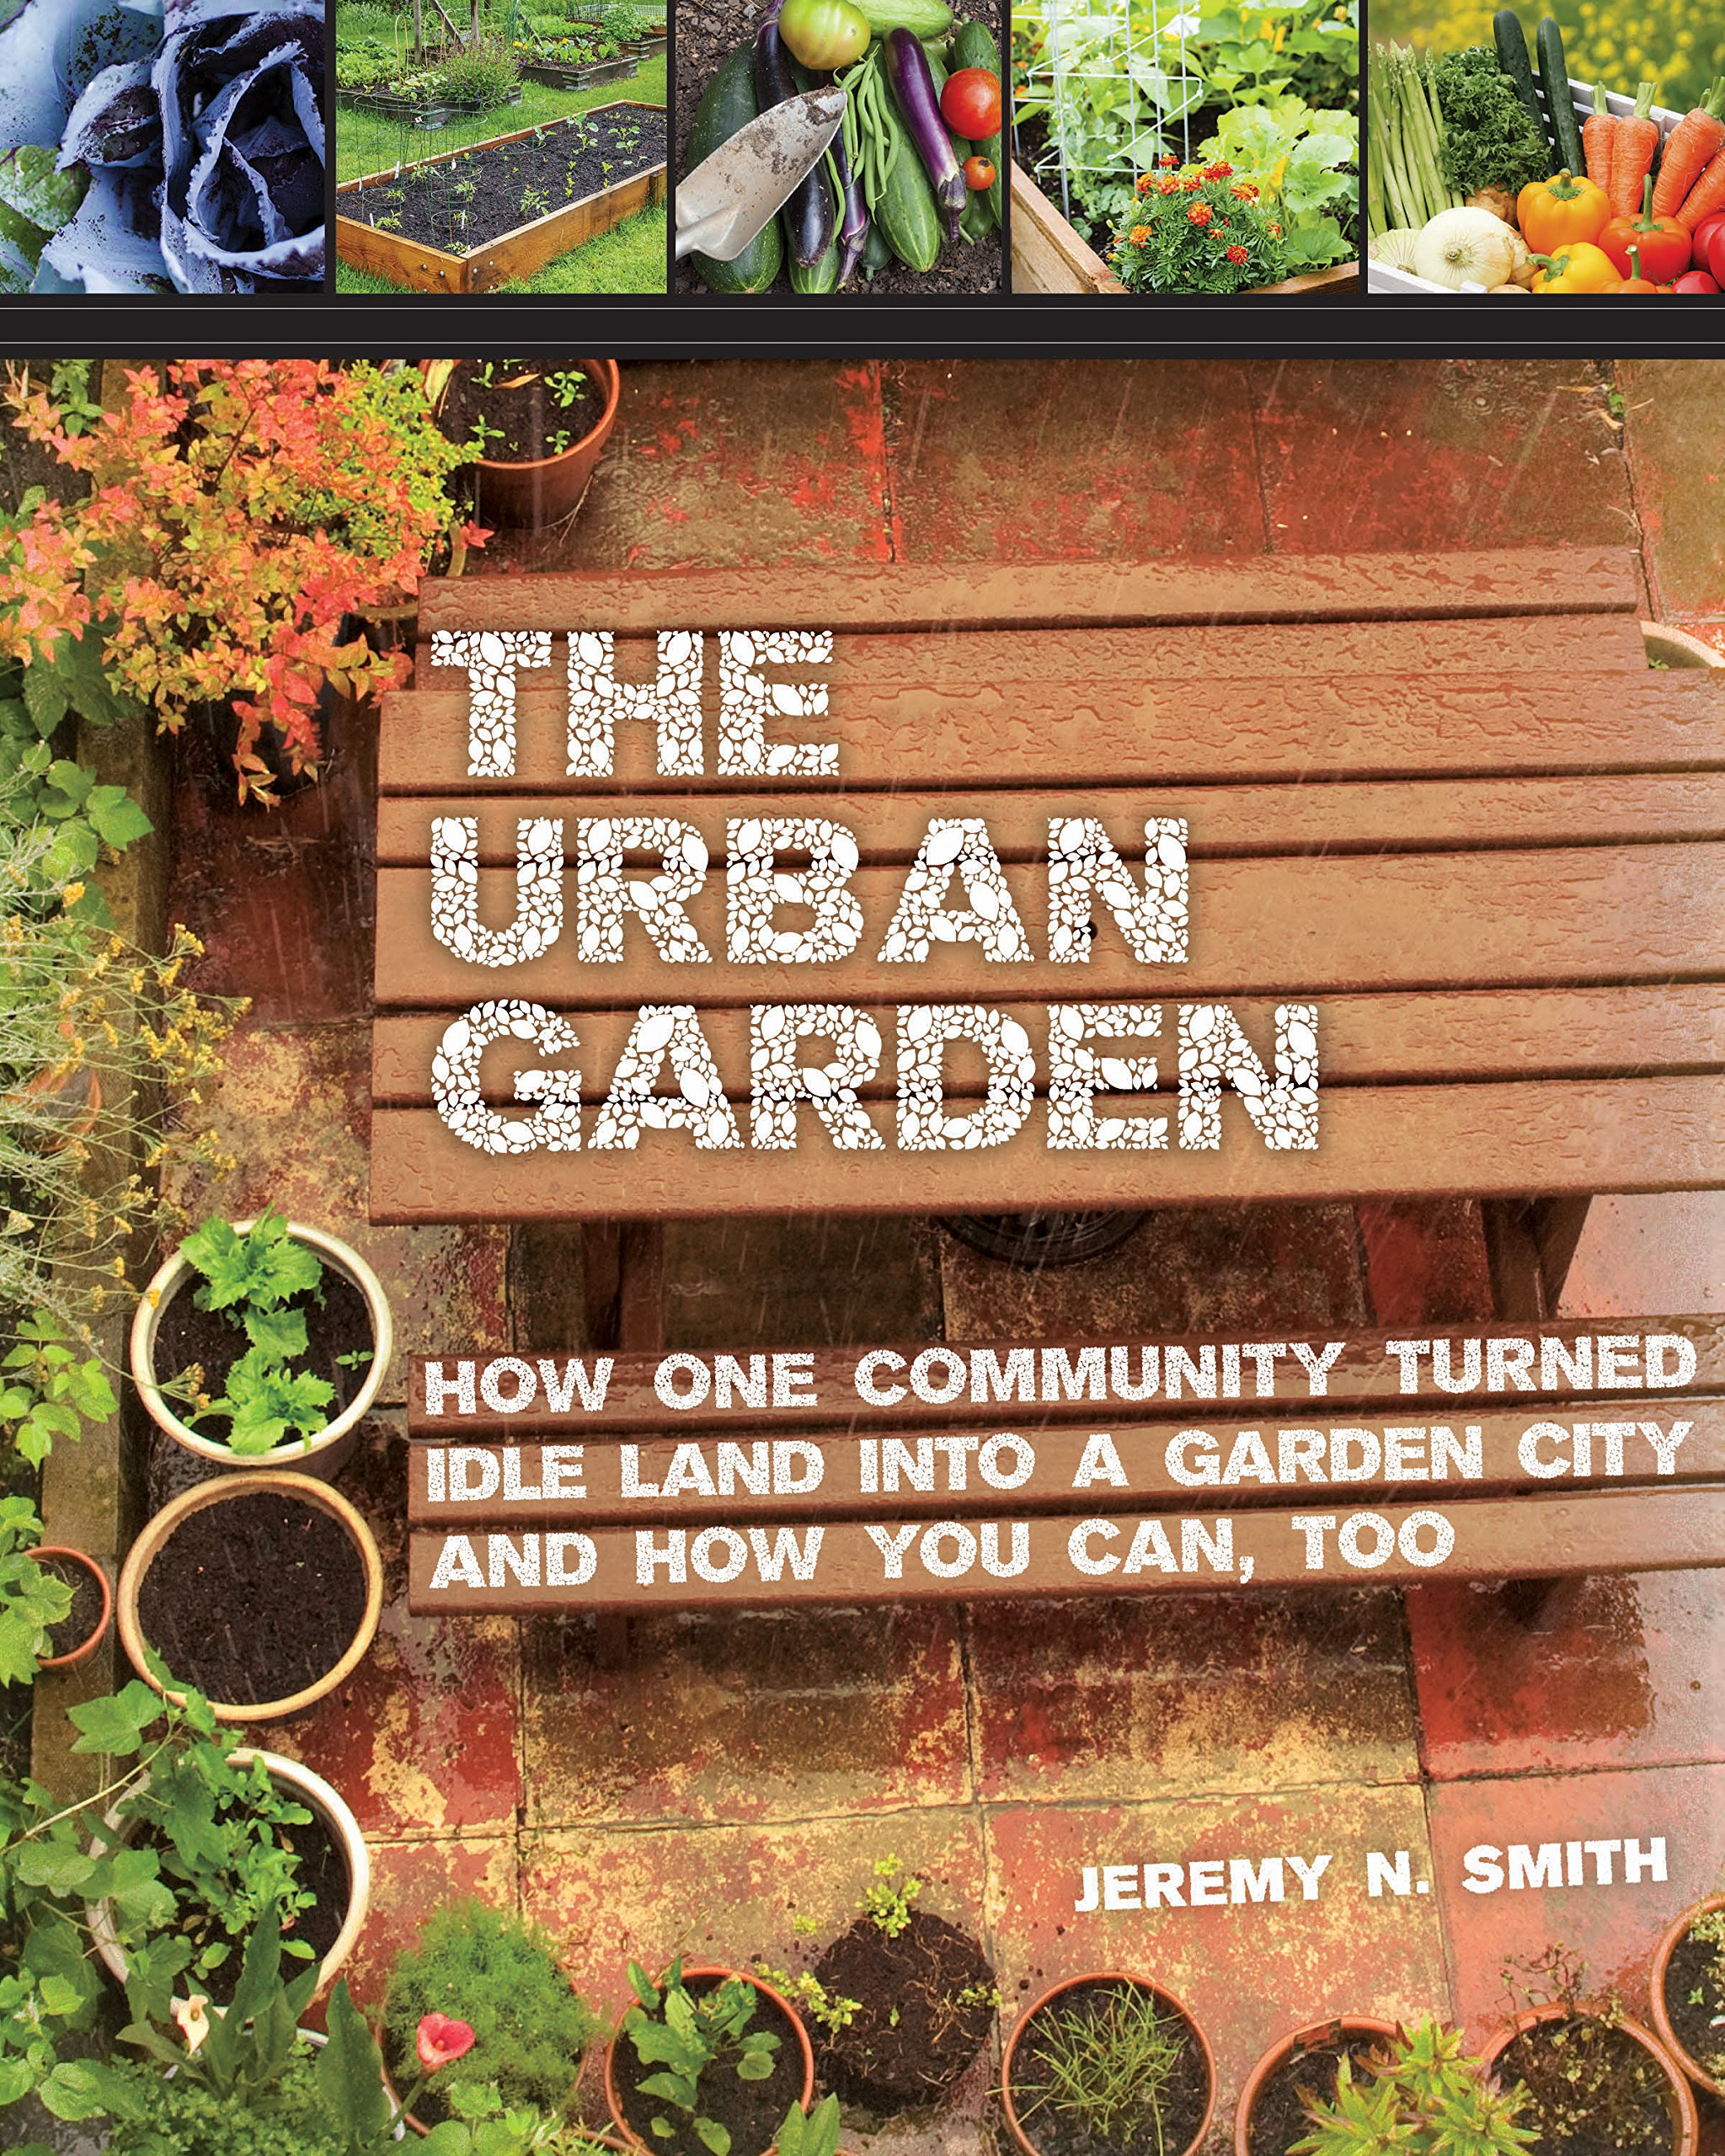 the urban garden how one community turned idle land into a garden city and how you can too jeremy n smith chad harder sepp jannotta bill mckibben - Urban Garden